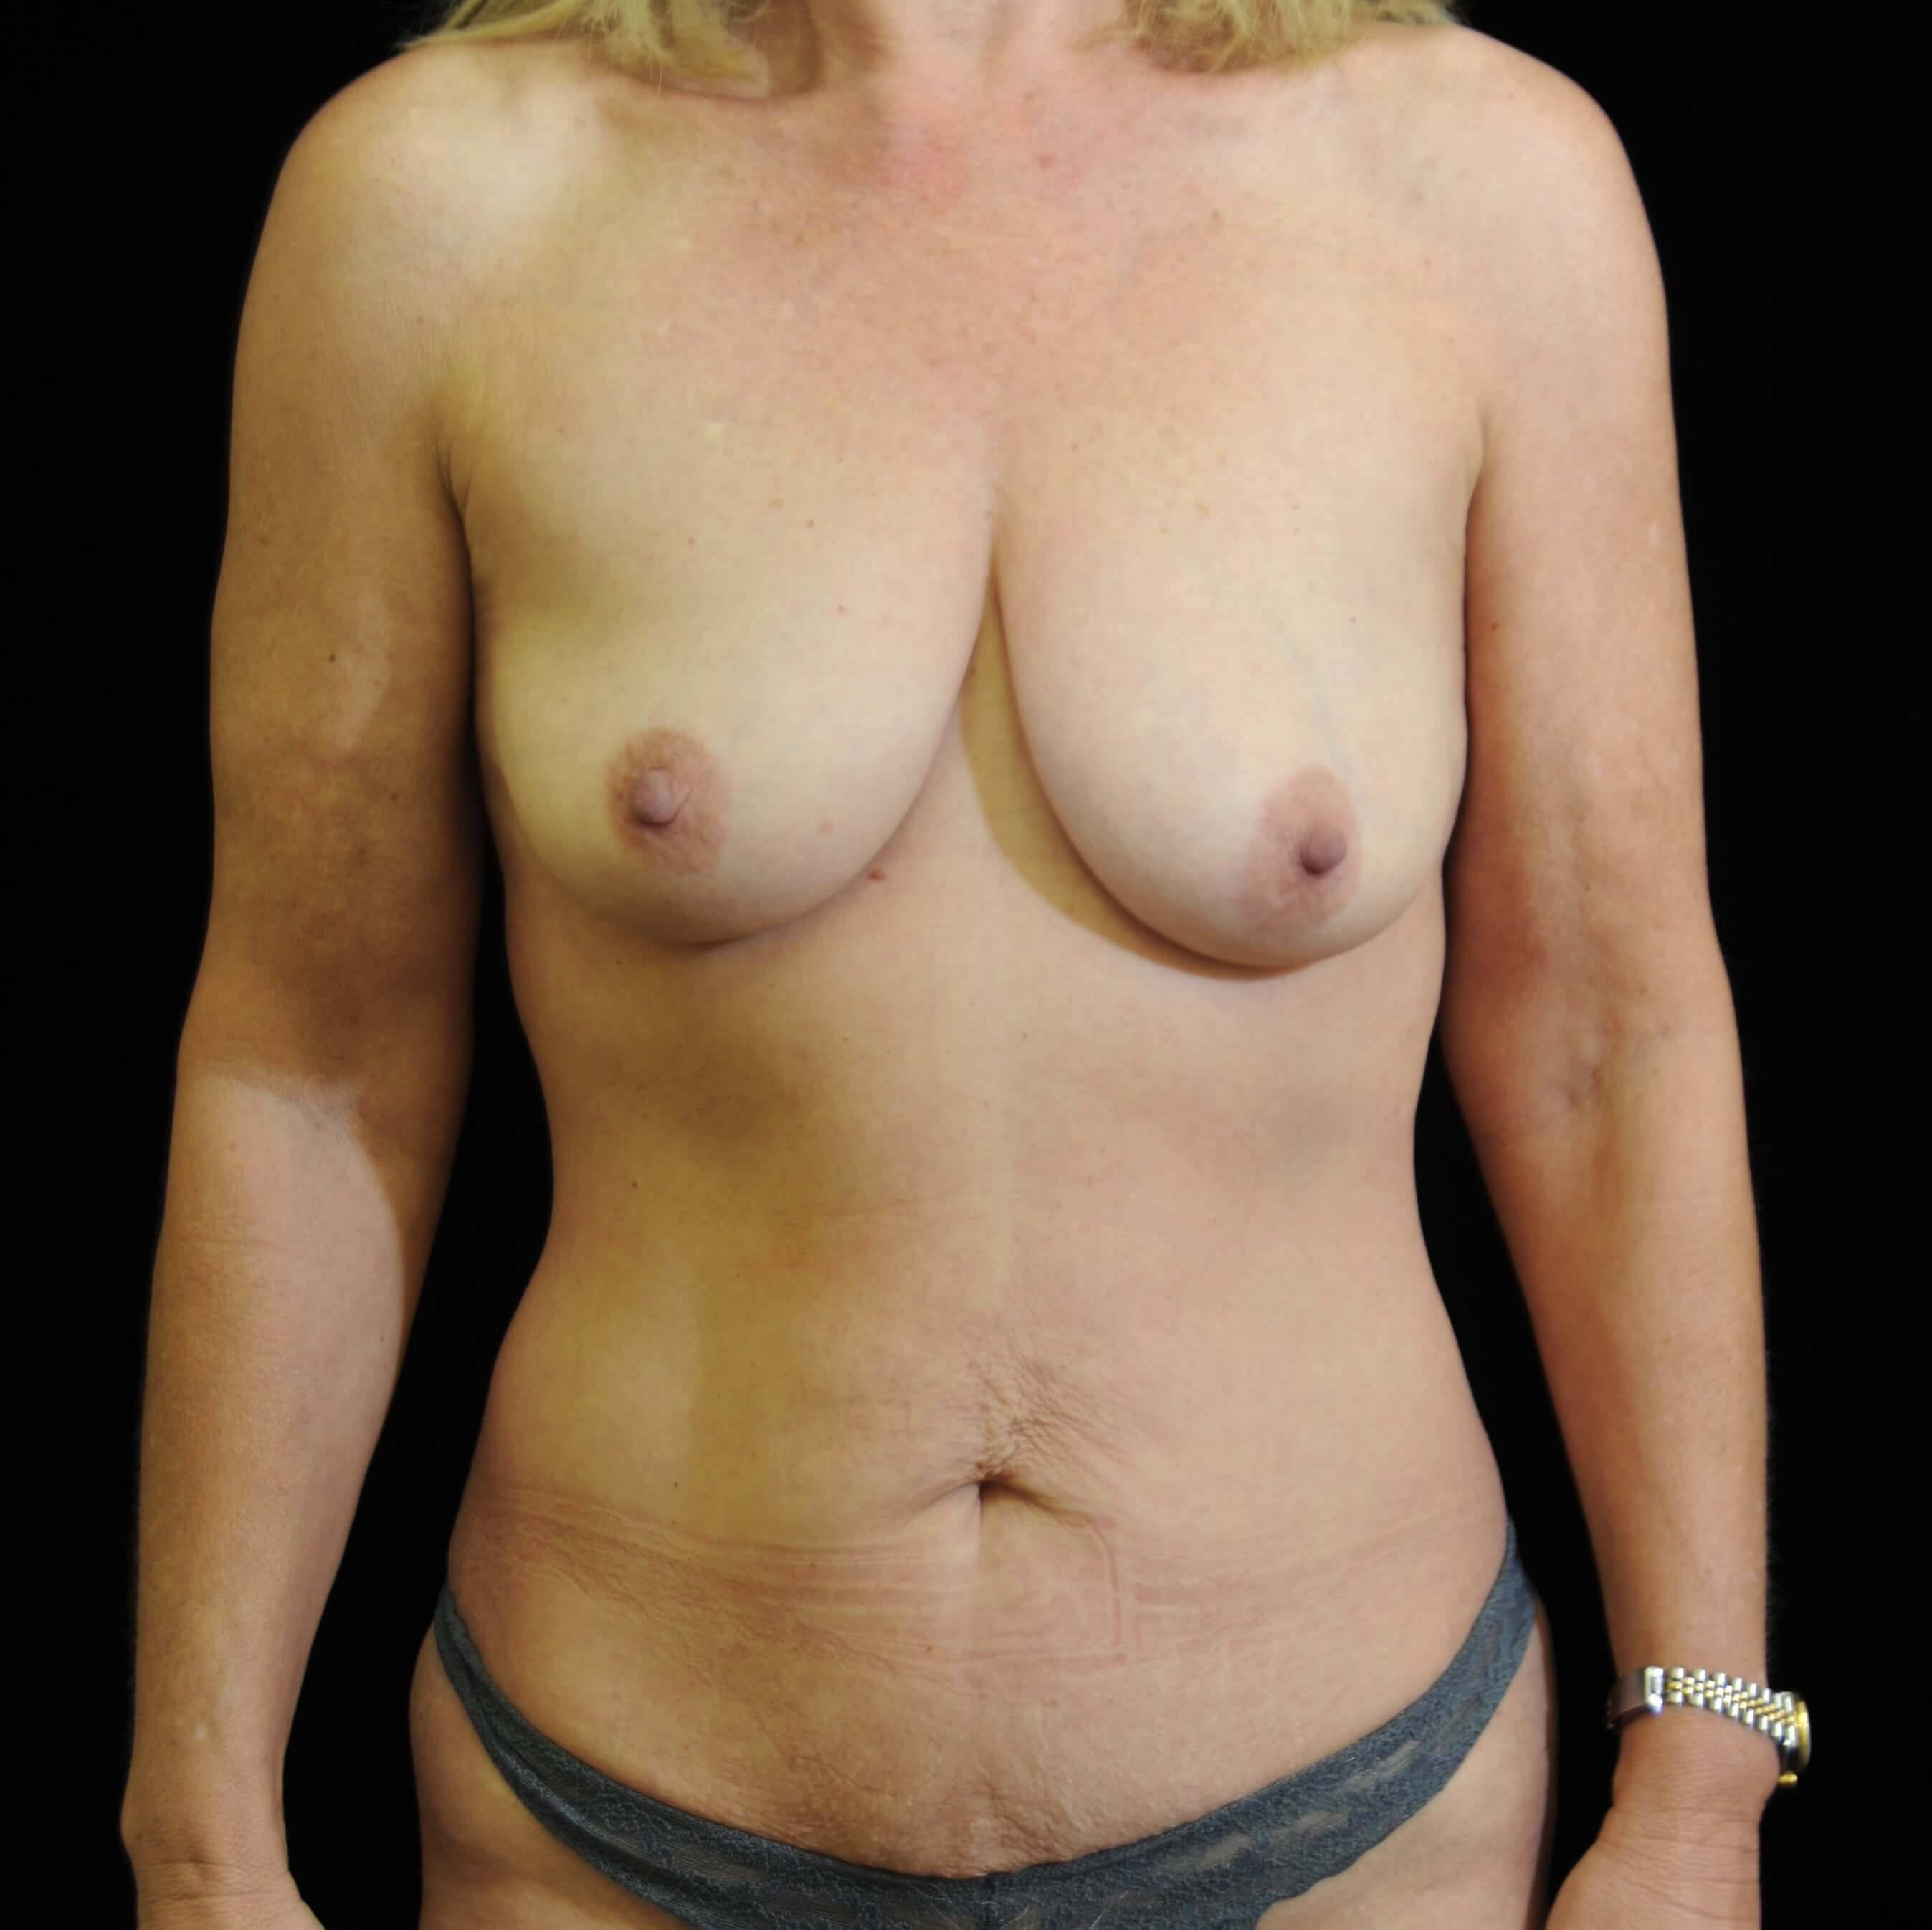 DALLAS WOMAN HAS MOMMY MAKEOVER- BREAST AUGMENTATION, FULL TUMMY TUCK, AND LIPO